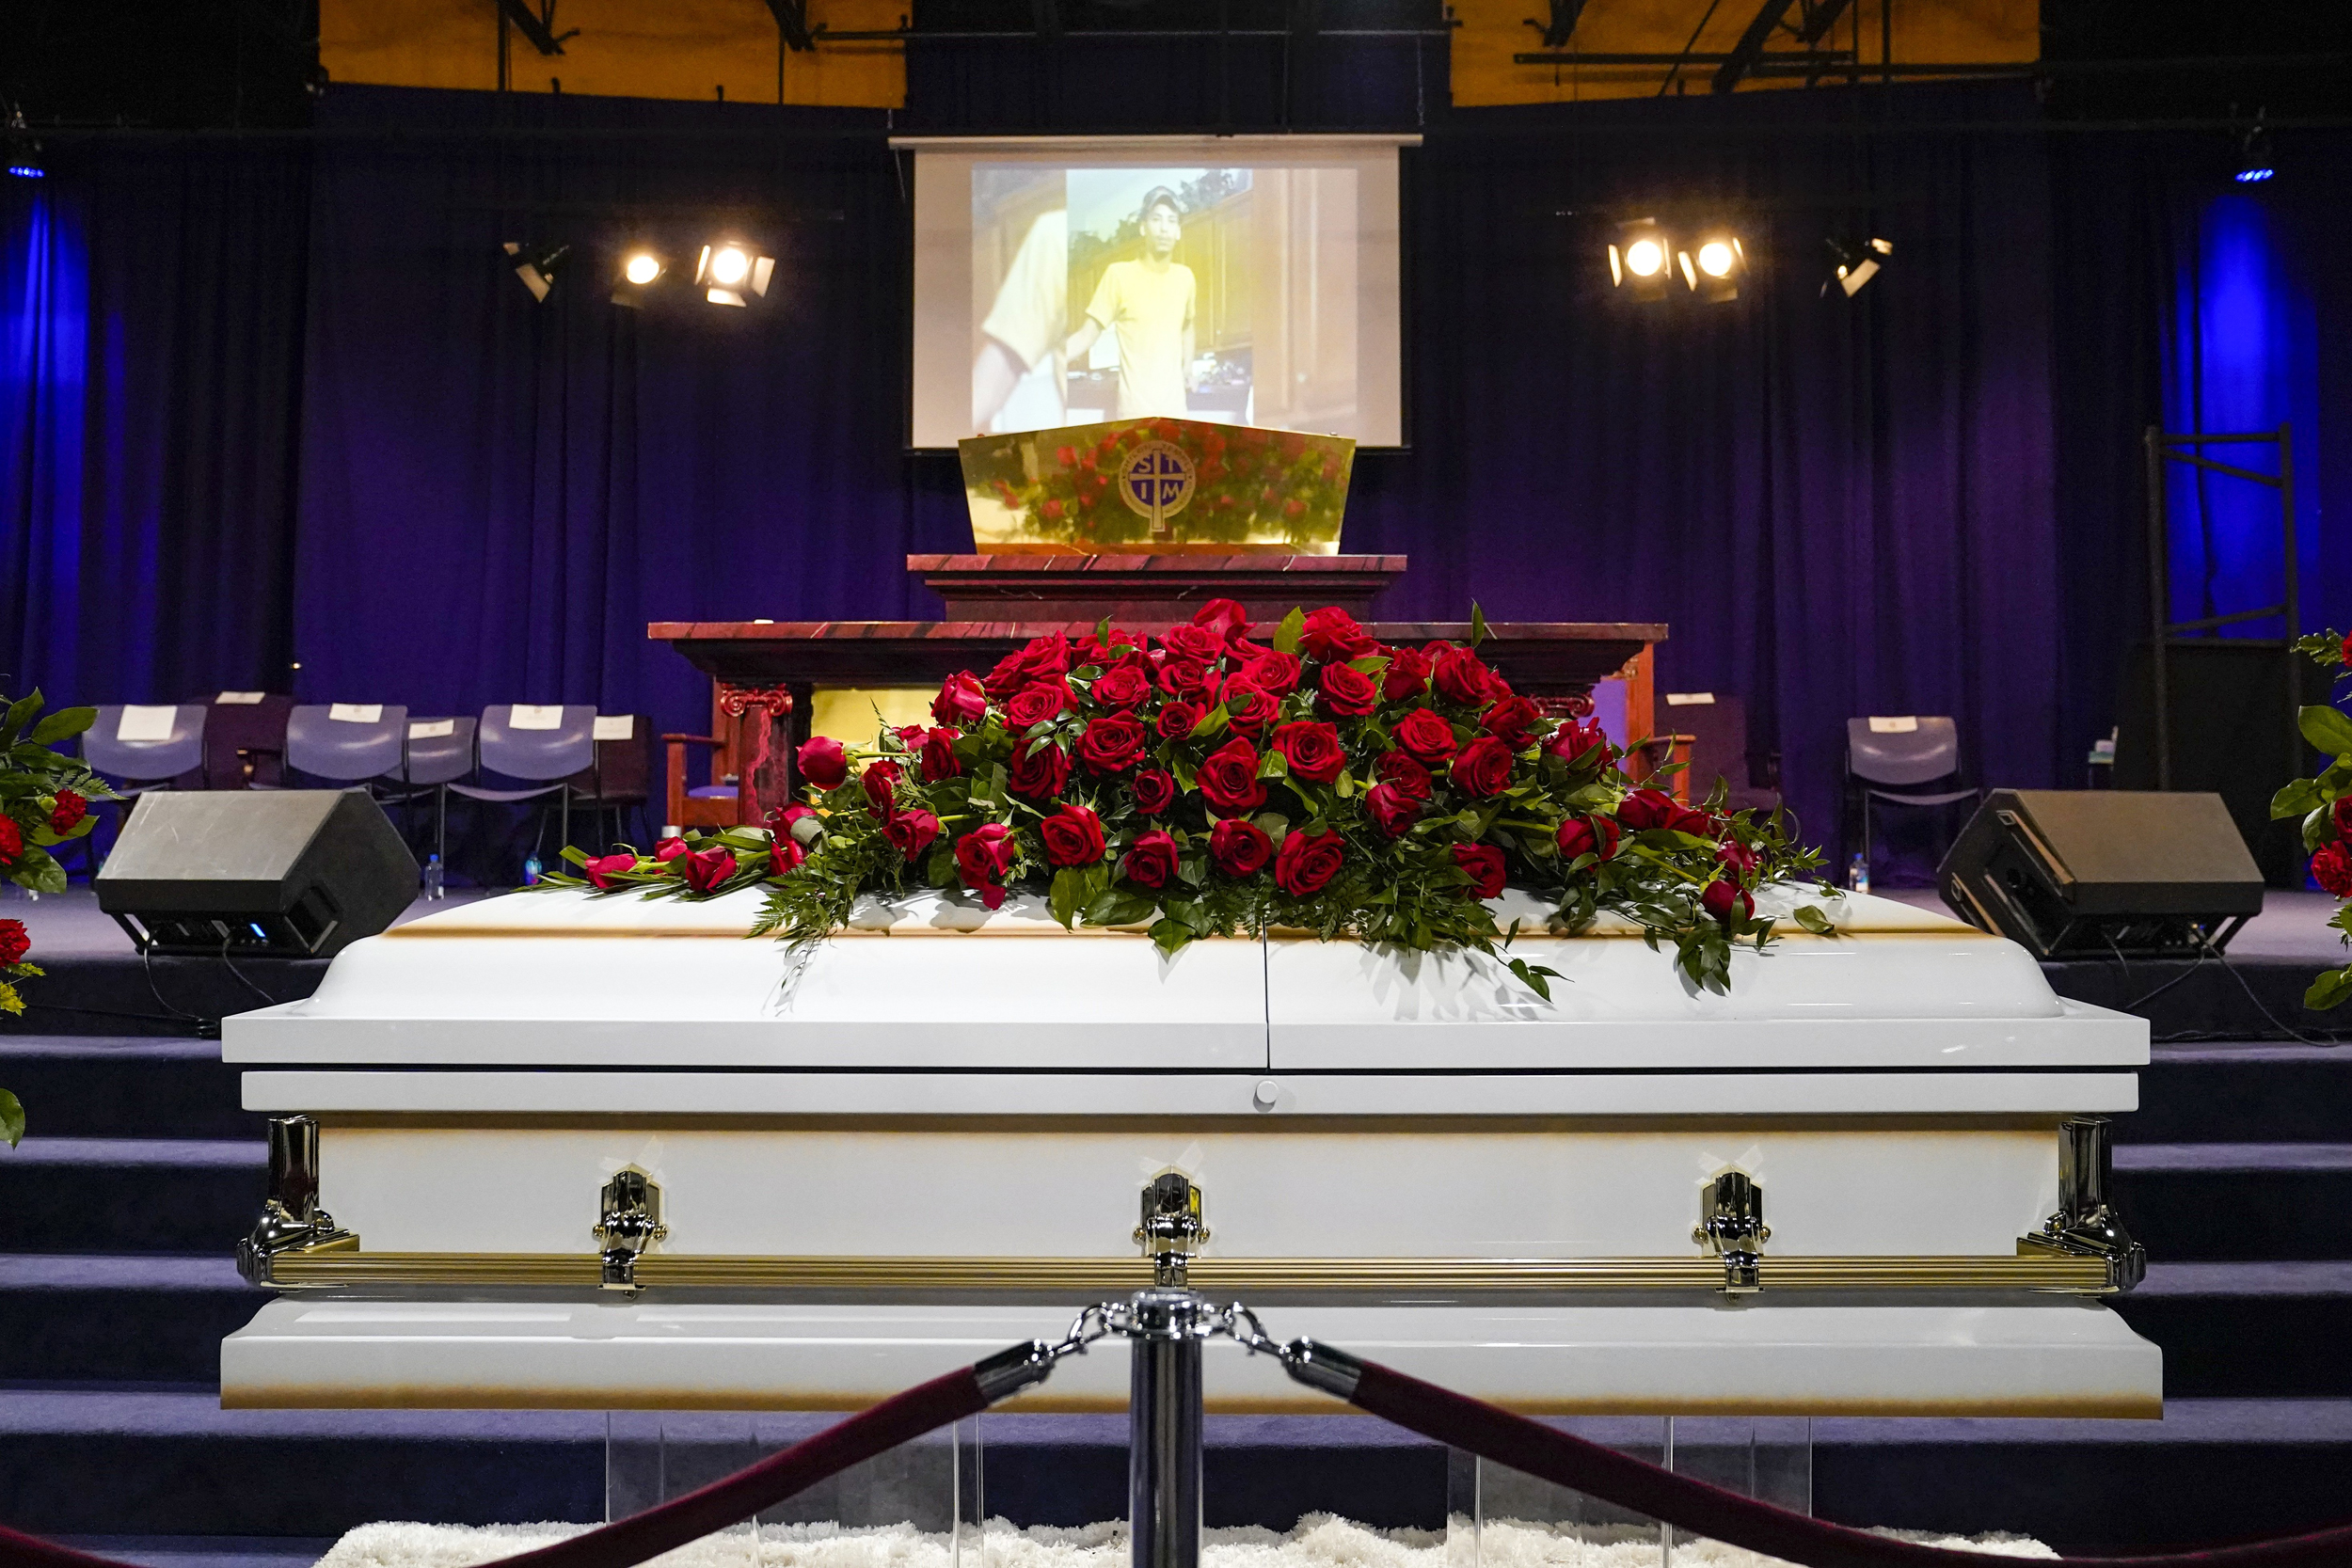 Black News: Daunte Wright Remembered In Emotional Funeral Service Today 4/22/21